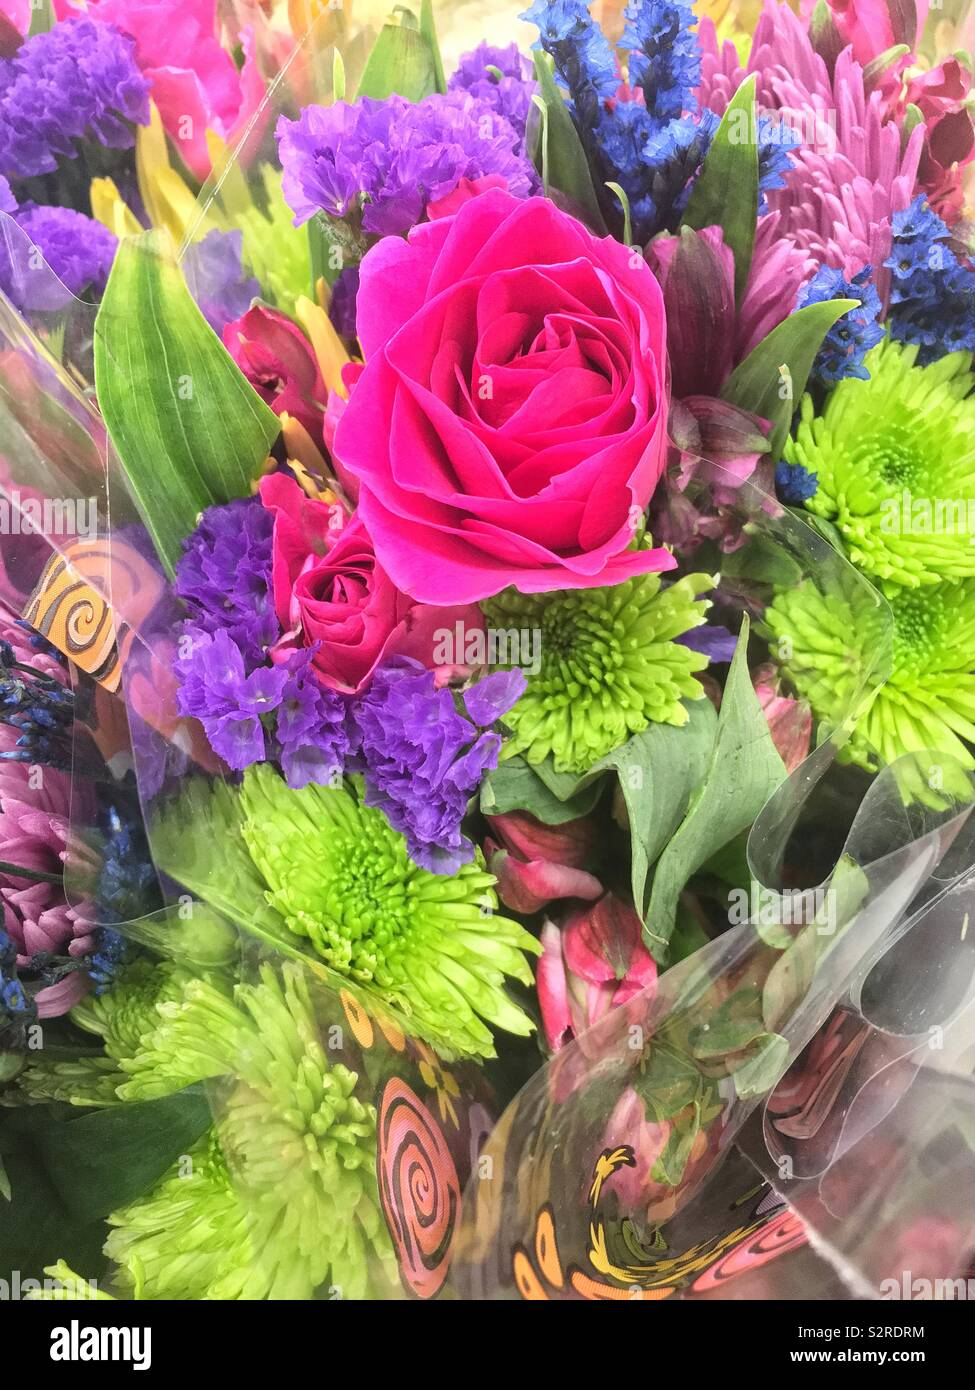 Bouquet of fresh colorful flowers with a pink rose. - Stock Image